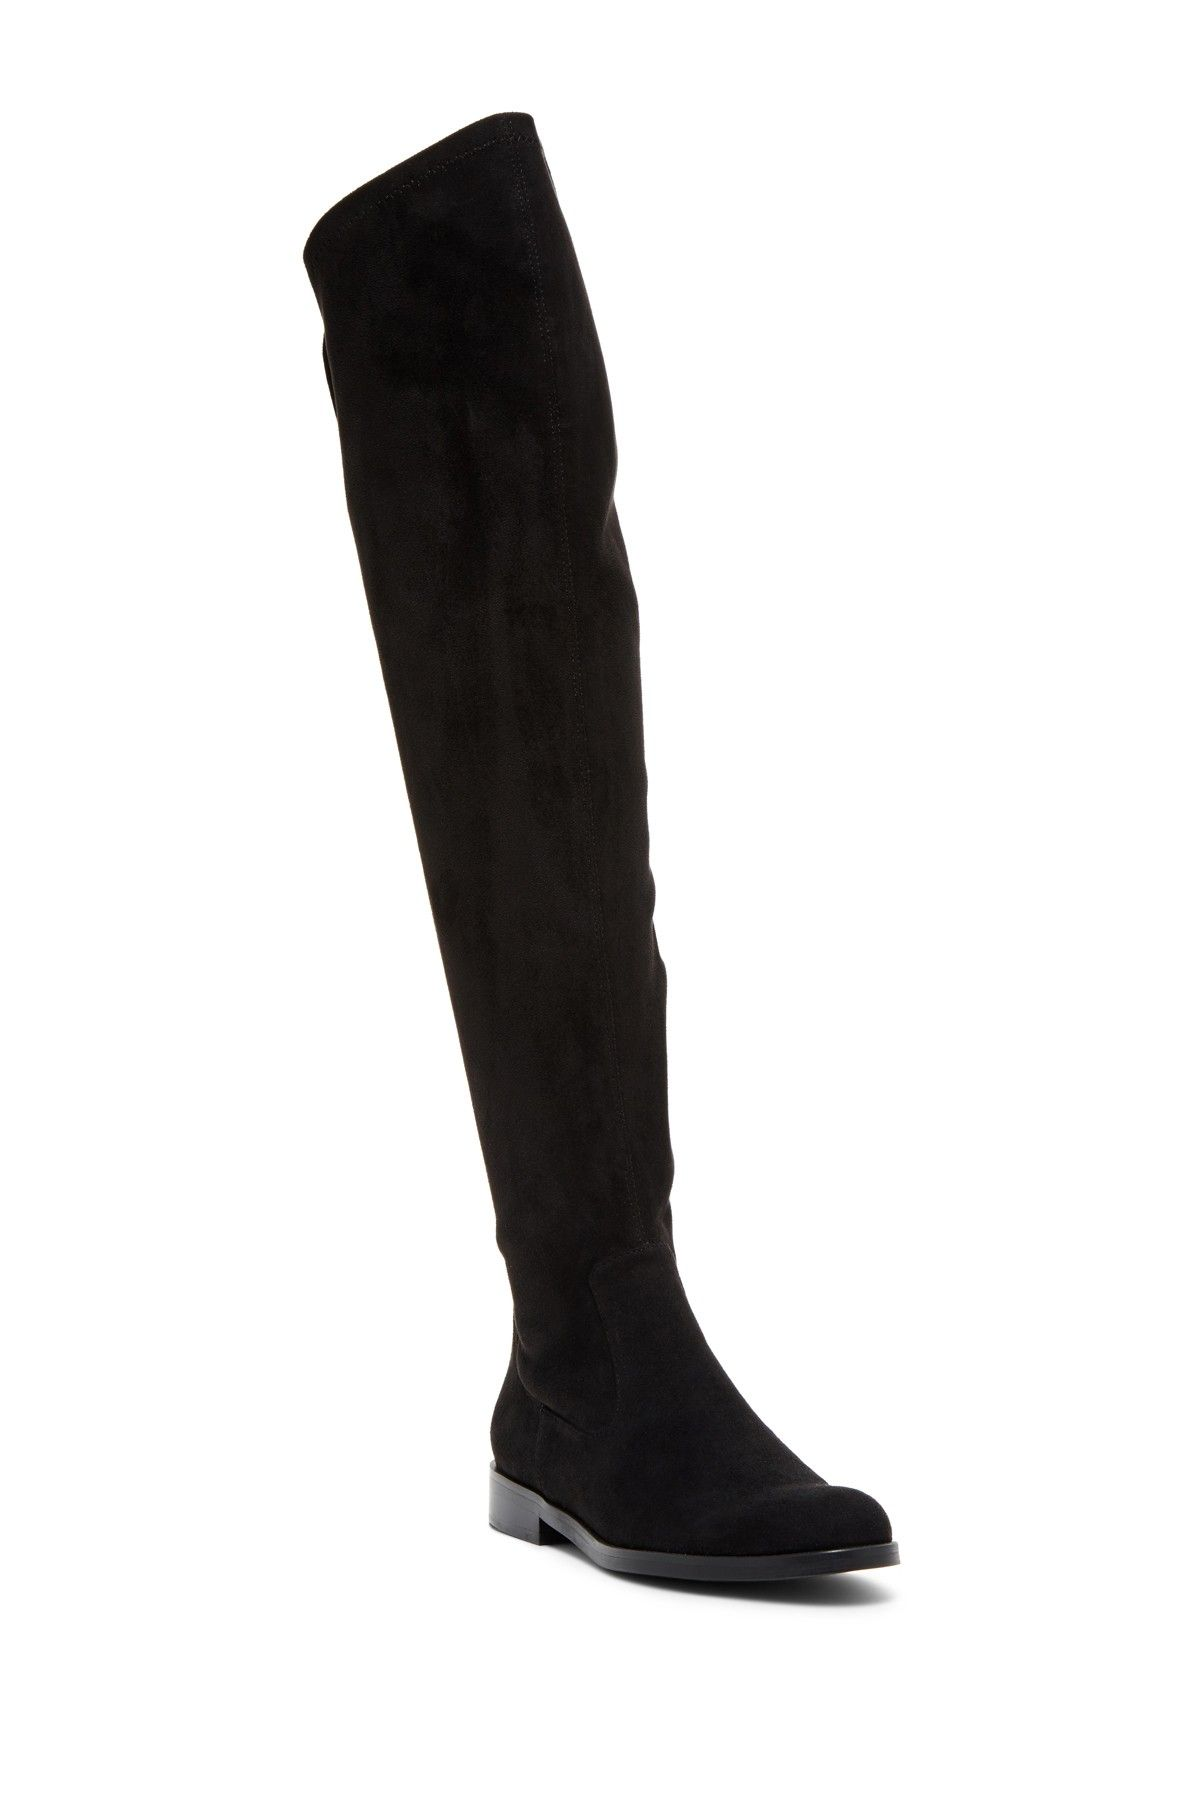 9c2450364f1 Kenneth Cole Reaction Wind Chime Over-the-Knee Lace-Up Back Boot ...